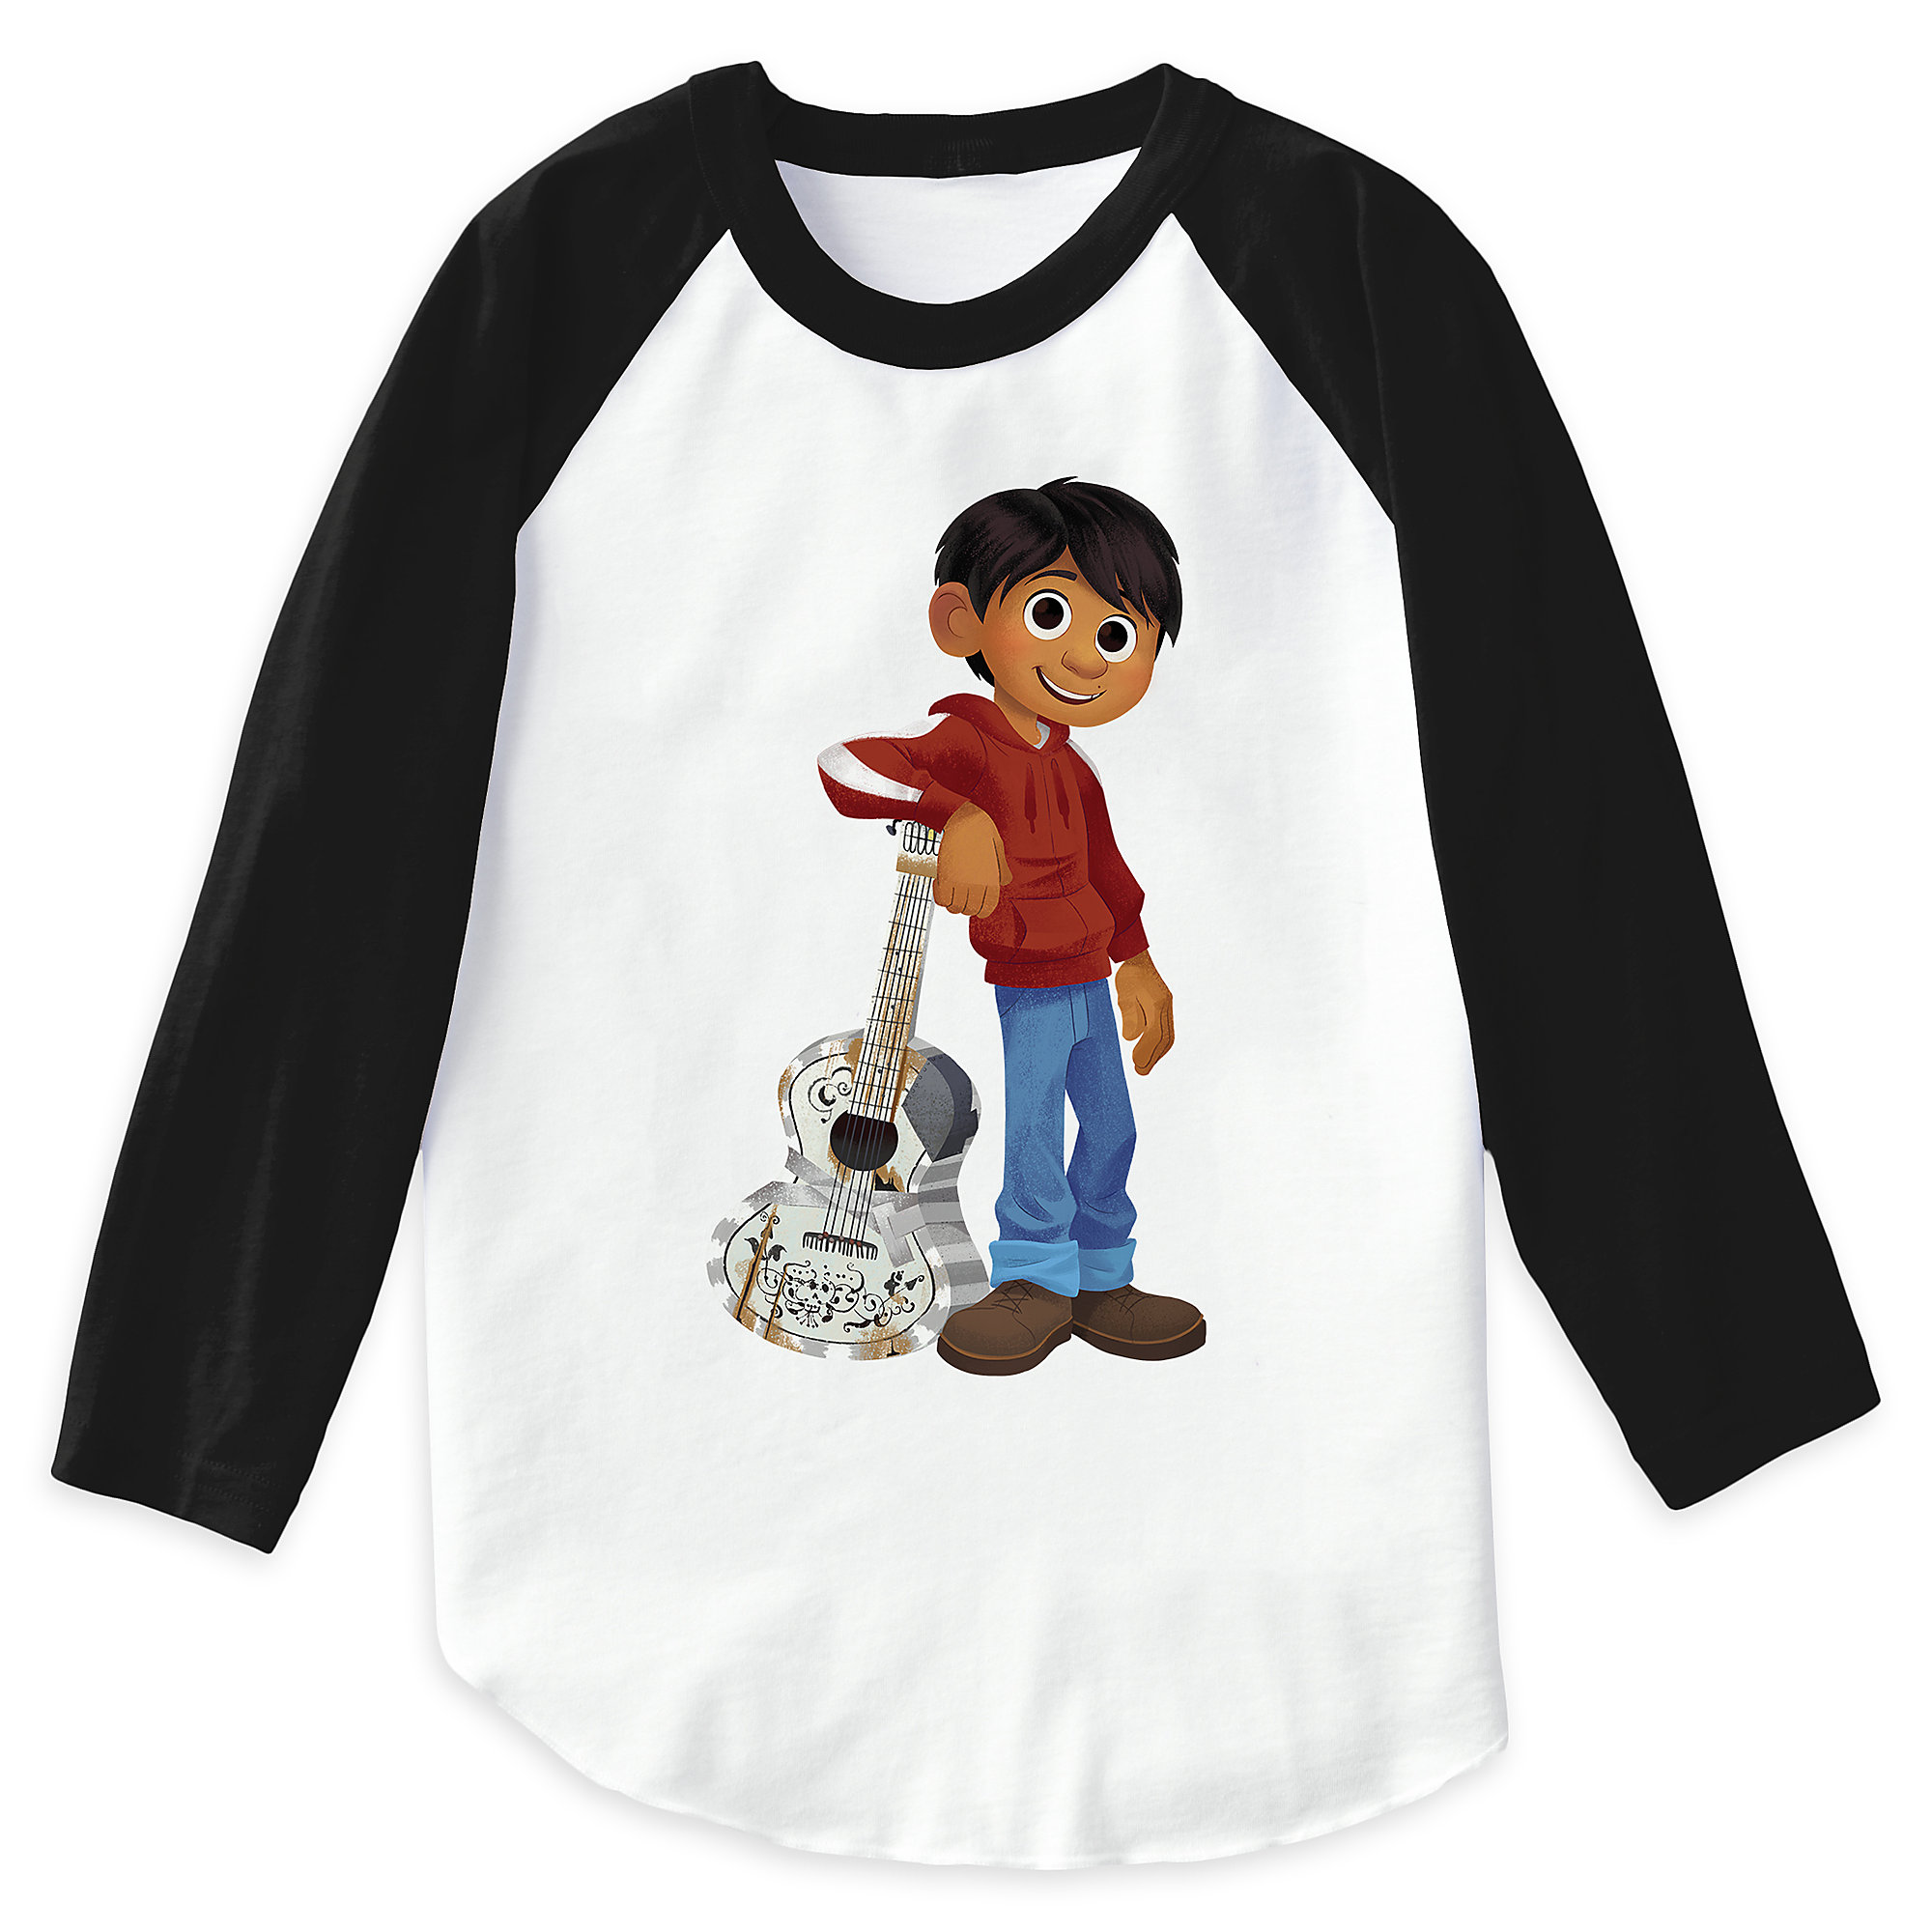 Miguel Playing Guitar Raglan T-Shirt for Boys - Coco - Customizable